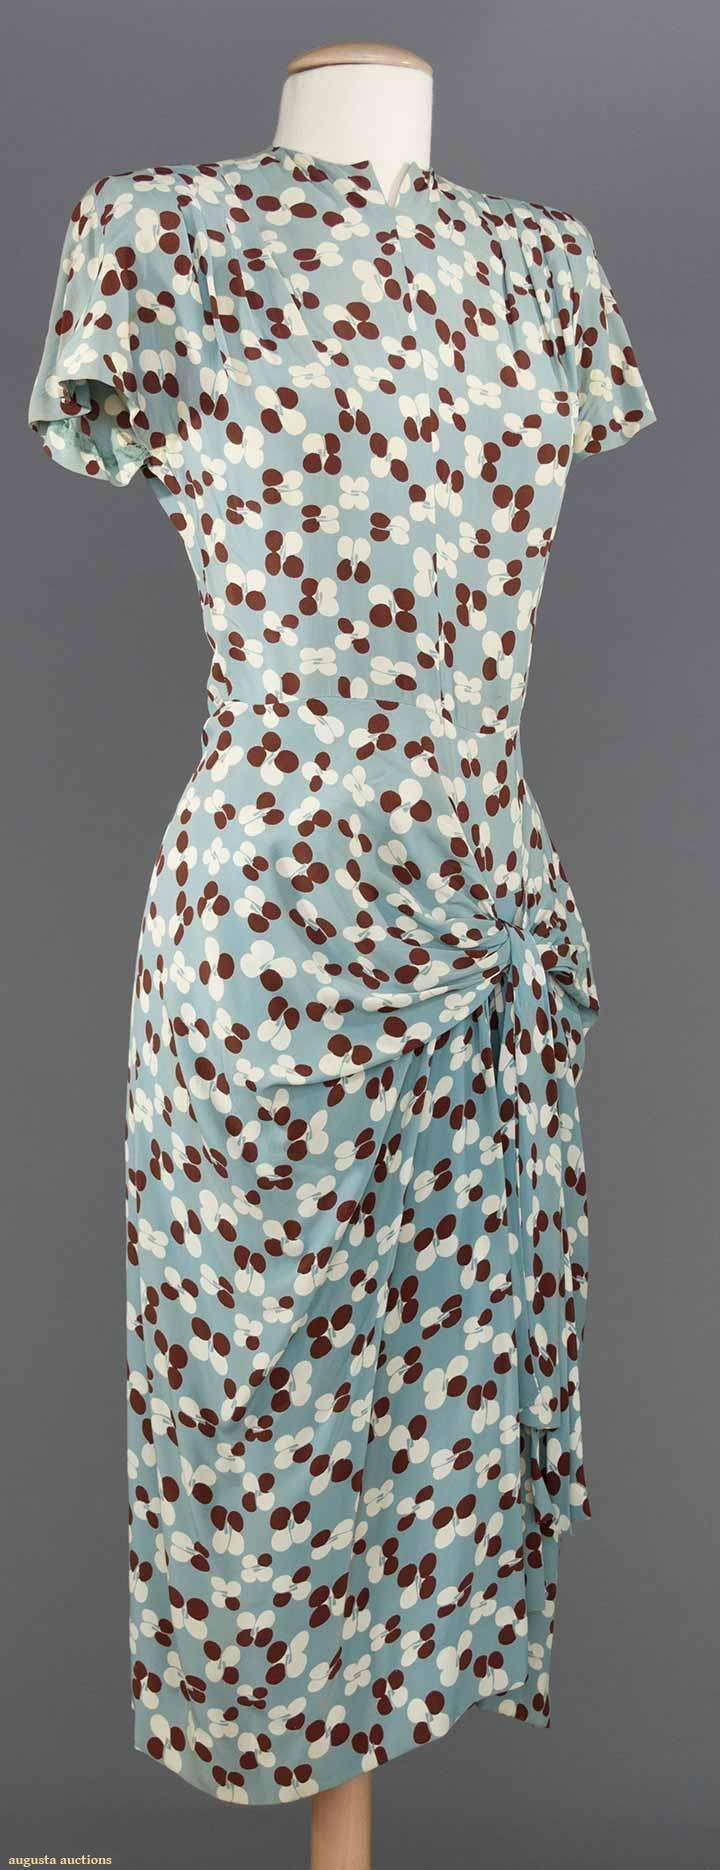 "PRINTED SILK DAY DRESS, 1940s blue grey w/ white & chocolate petals, sarong skirt, B 32"", W 26"", L 42"""